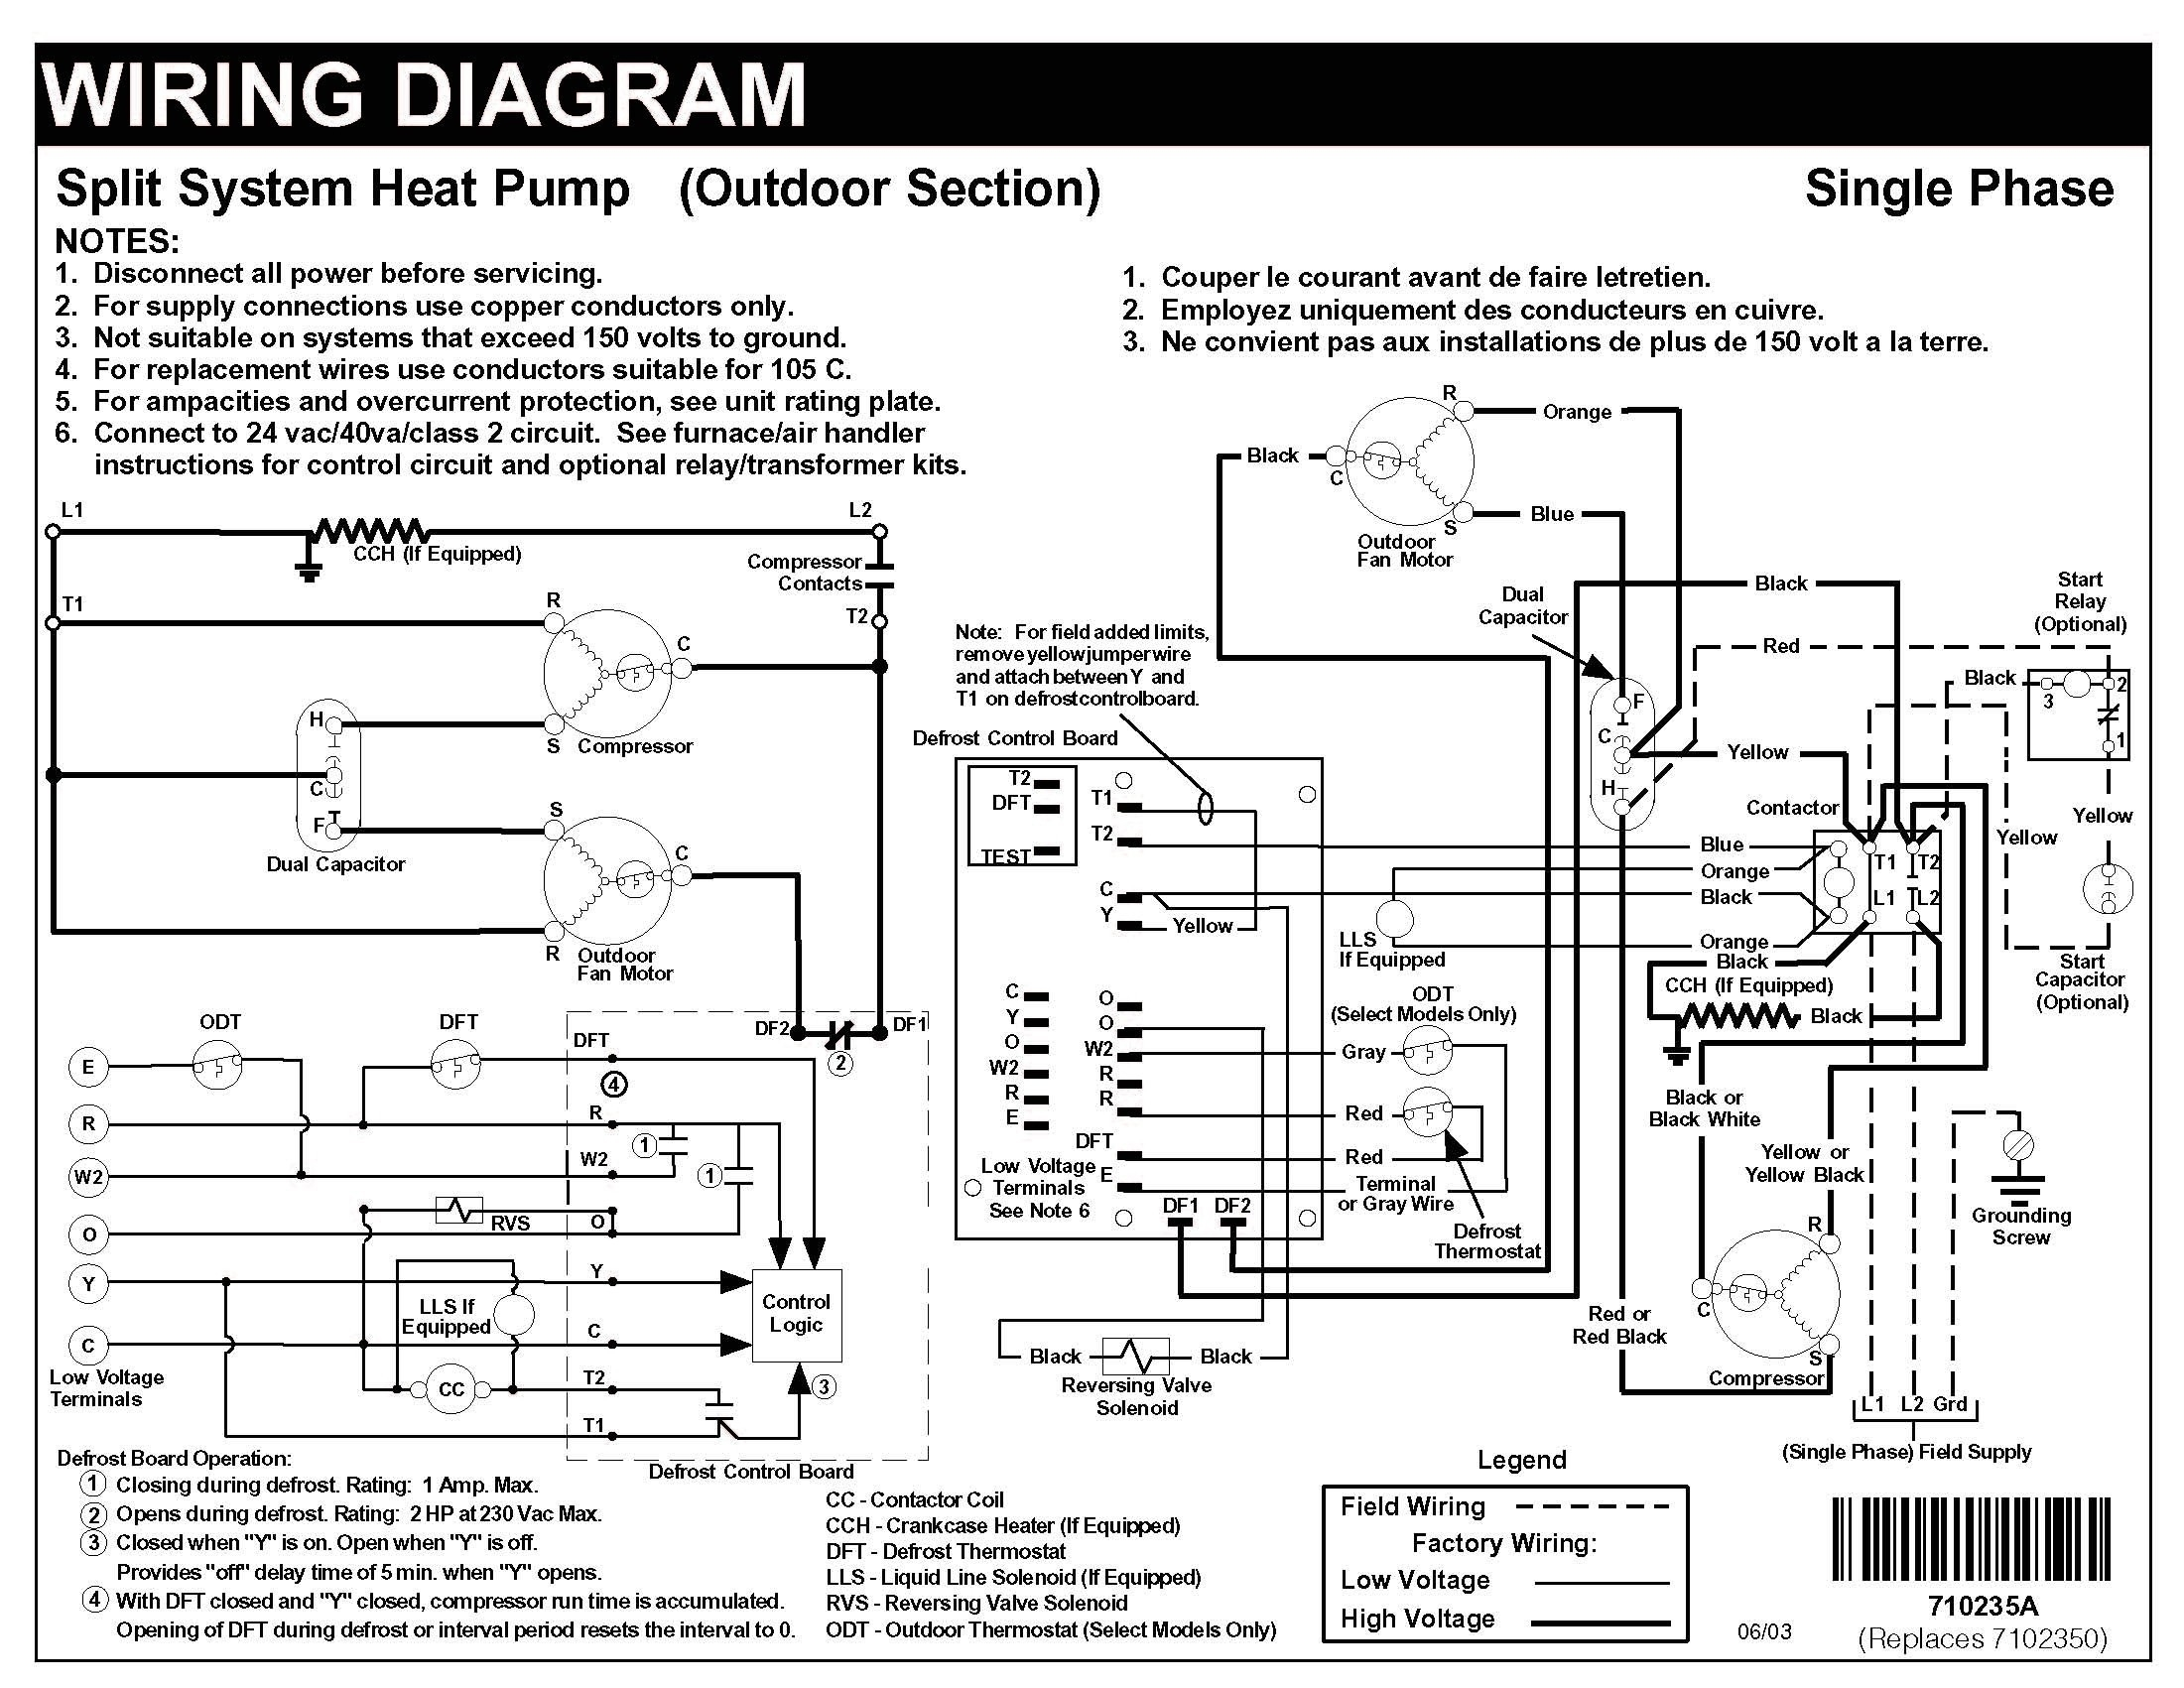 Payne Package Unit Wiring Diagram Payne Air Handler Wiring Diagram In Image Goodman Electric For Ripping I further White Rodgers Relay Wiring Diagram Unique How Wire A White Rodgers Room Thermostat Ripping Intertherm Wiring Of White Rodgers Relay Wiring Diagram as well Wiring Diagram Payne Heat Pump Thermostat Package In additionally D Changing Payne Thermostat Honeywell Rth D Py Thermostat as well Lennox Pulse Furnace Wiring Diagram. on payne thermostat wiring diagram